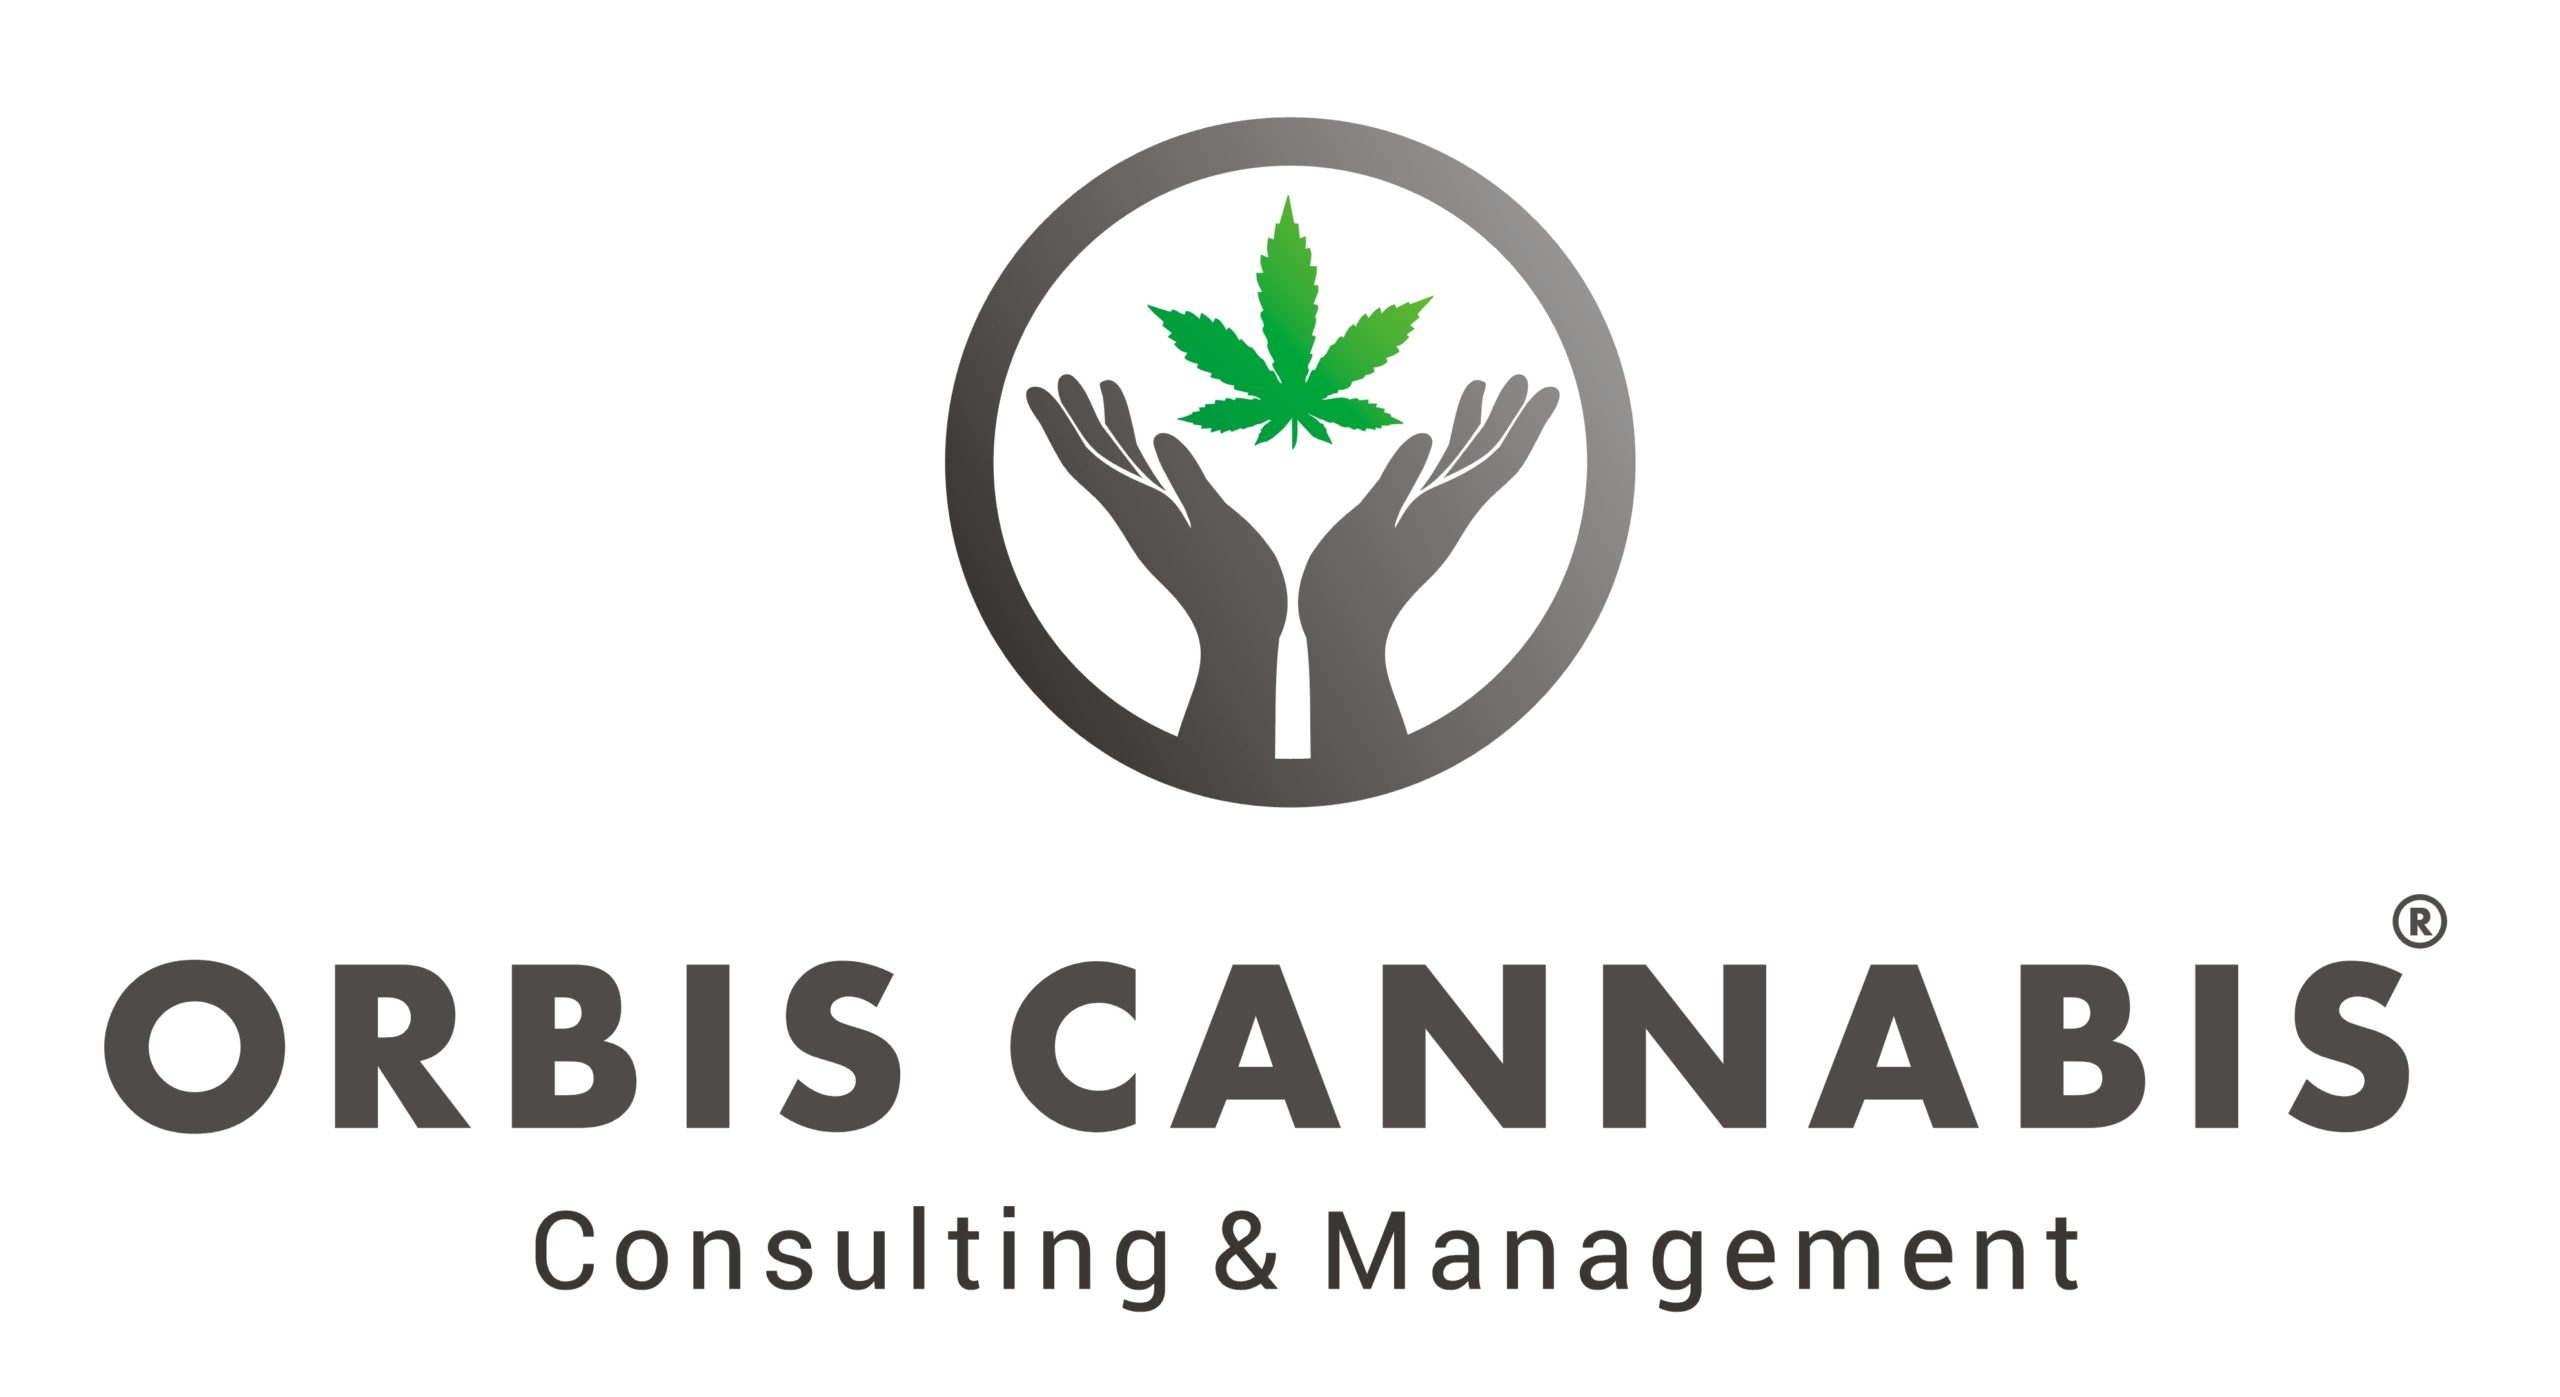 Orbis Cannabis – Consulting & Management